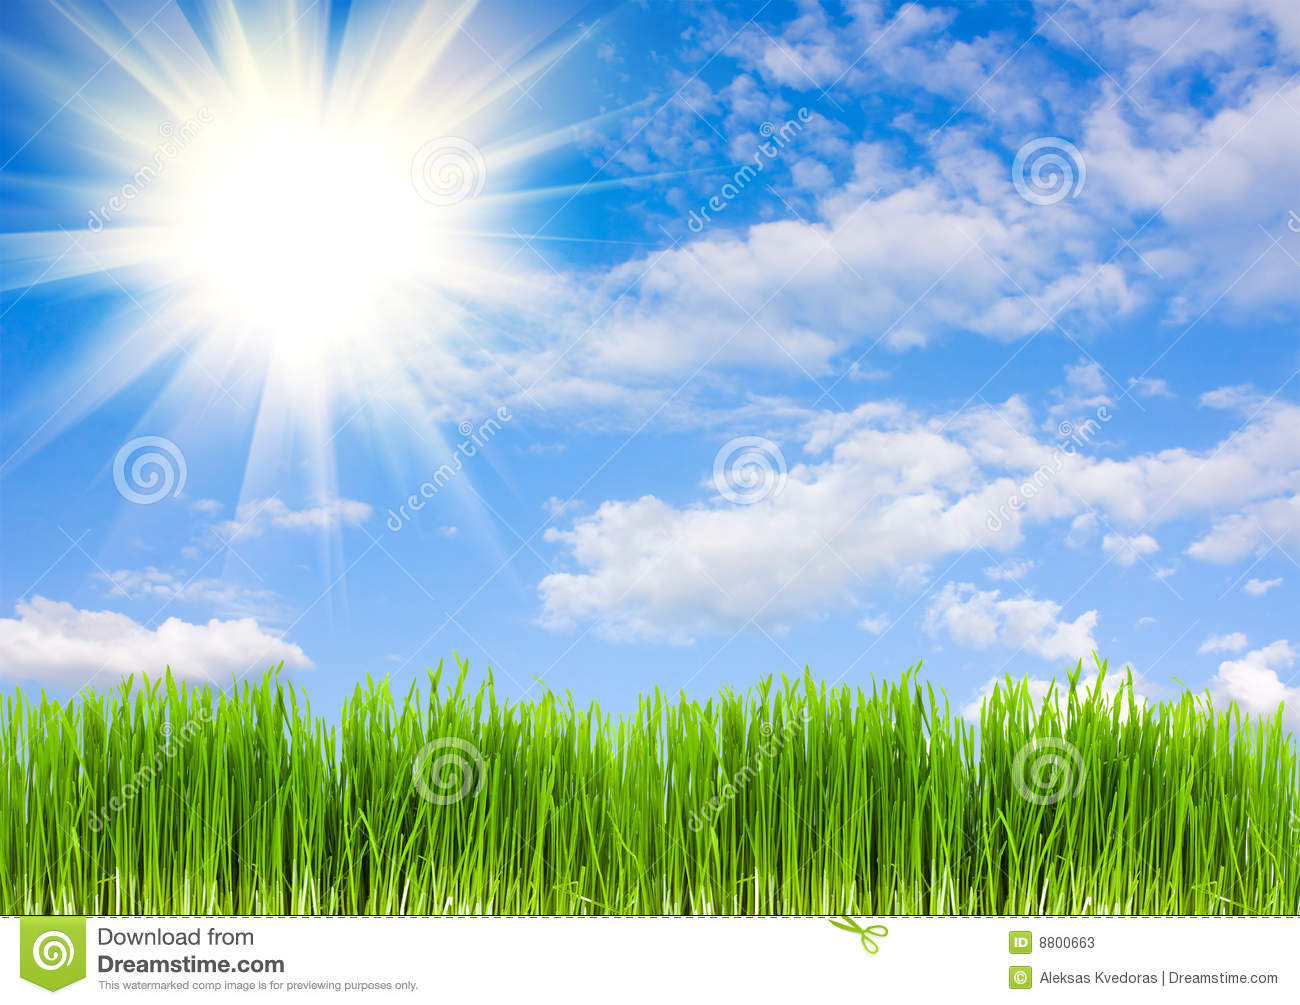 Grass On A Background Of Blue Sky Stock Image - Image of ...